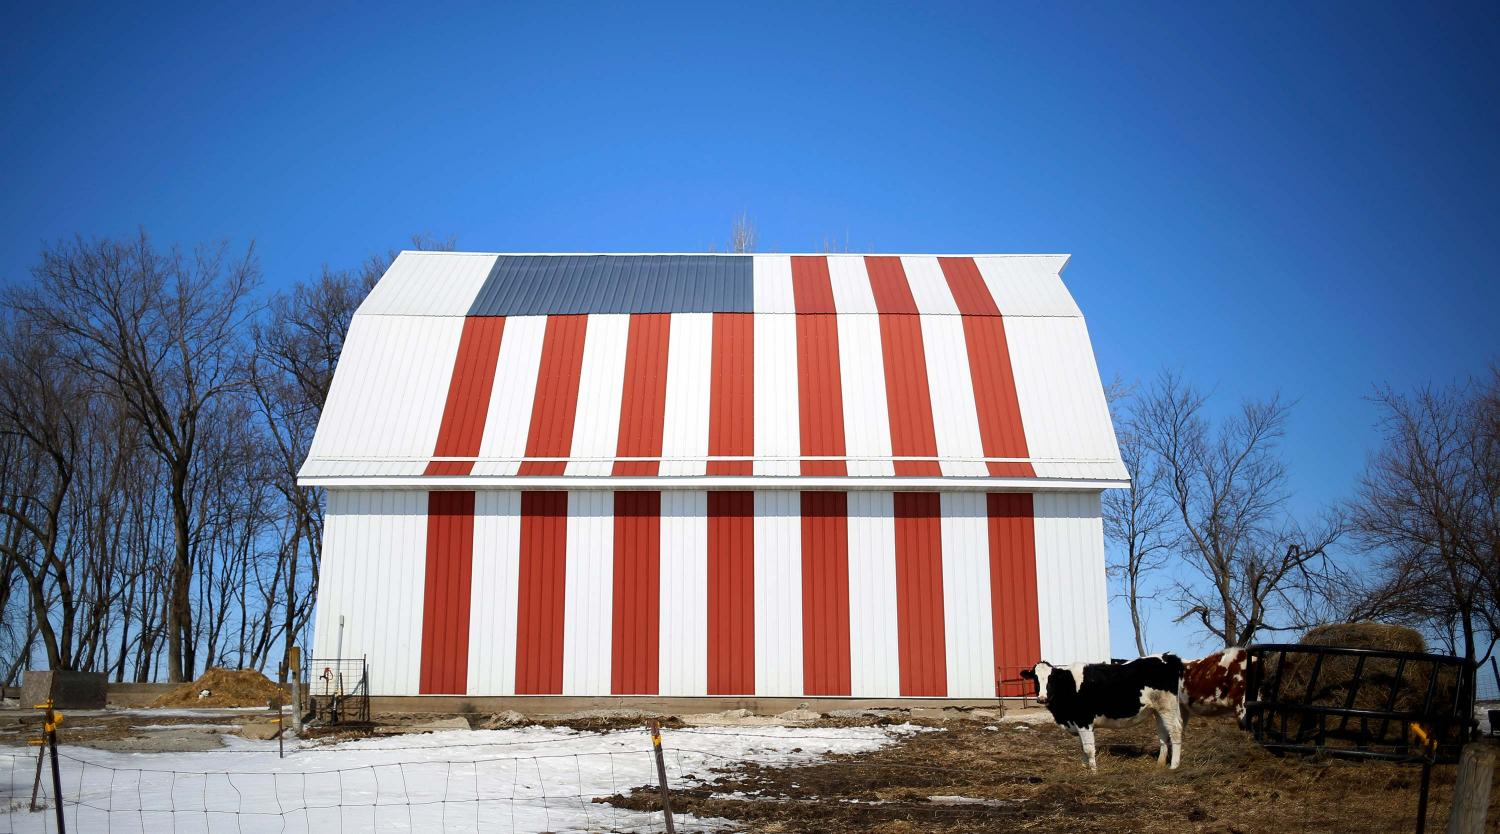 A cow stands in front of barn painted with a U.S. flag in Homestead, Iowa. Iowa, the American heartland with endless farm fields and quiet towns. March 7, 2015.